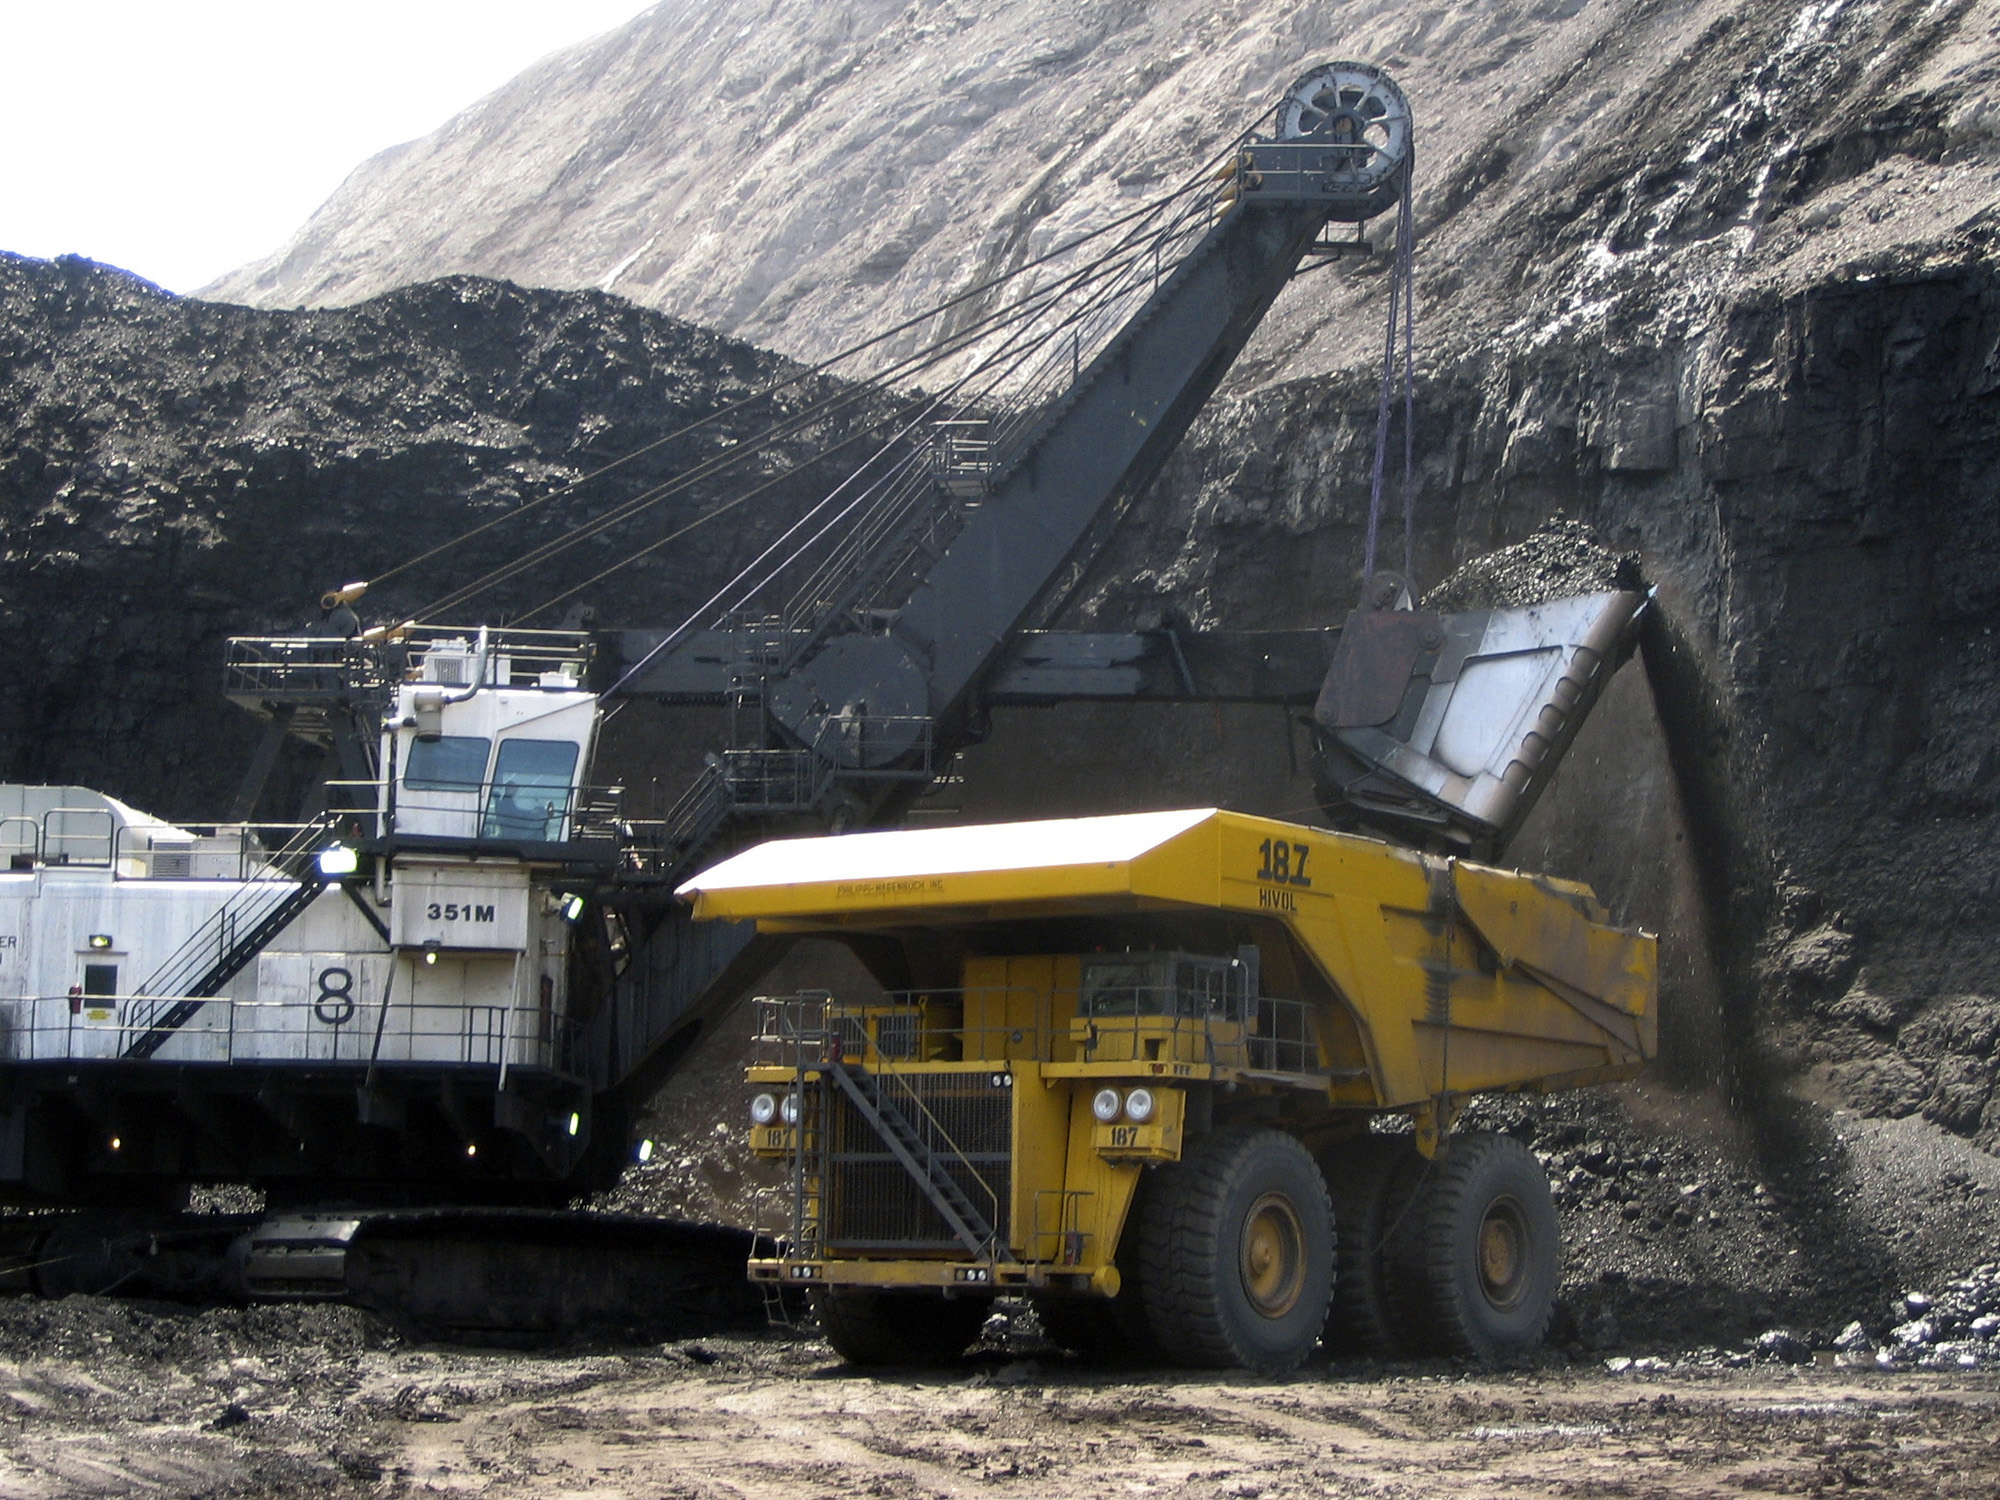 <p>In thisfile photo, a shovel preparesto dump a load of coal into a 320-ton truck at the Black Thunder Mine in Wright, Wyo. Black thunder Mine is owned by Arch Coal Co.</p>